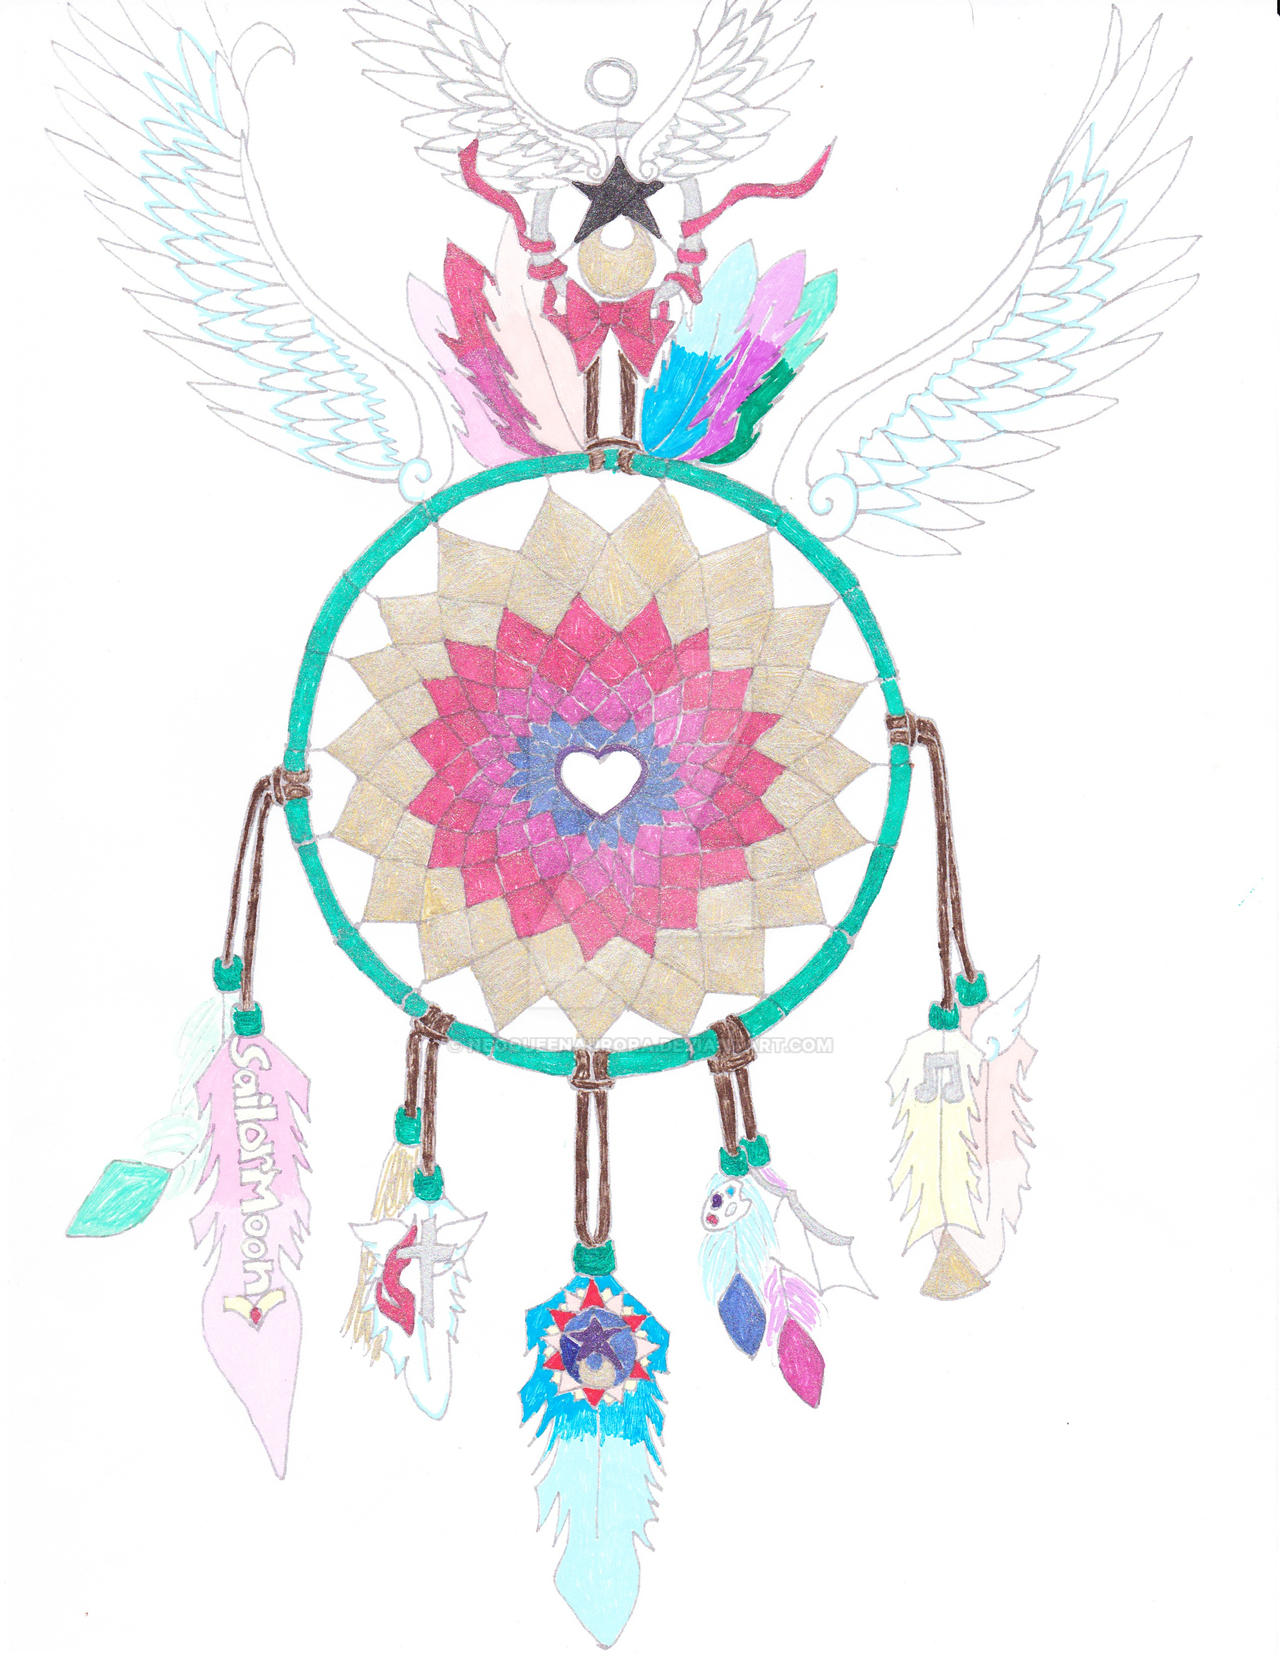 Dream Catcher Tumblr Backgrounds Dream Catcher Colored again by NeoQueenAurora on DeviantArt 34